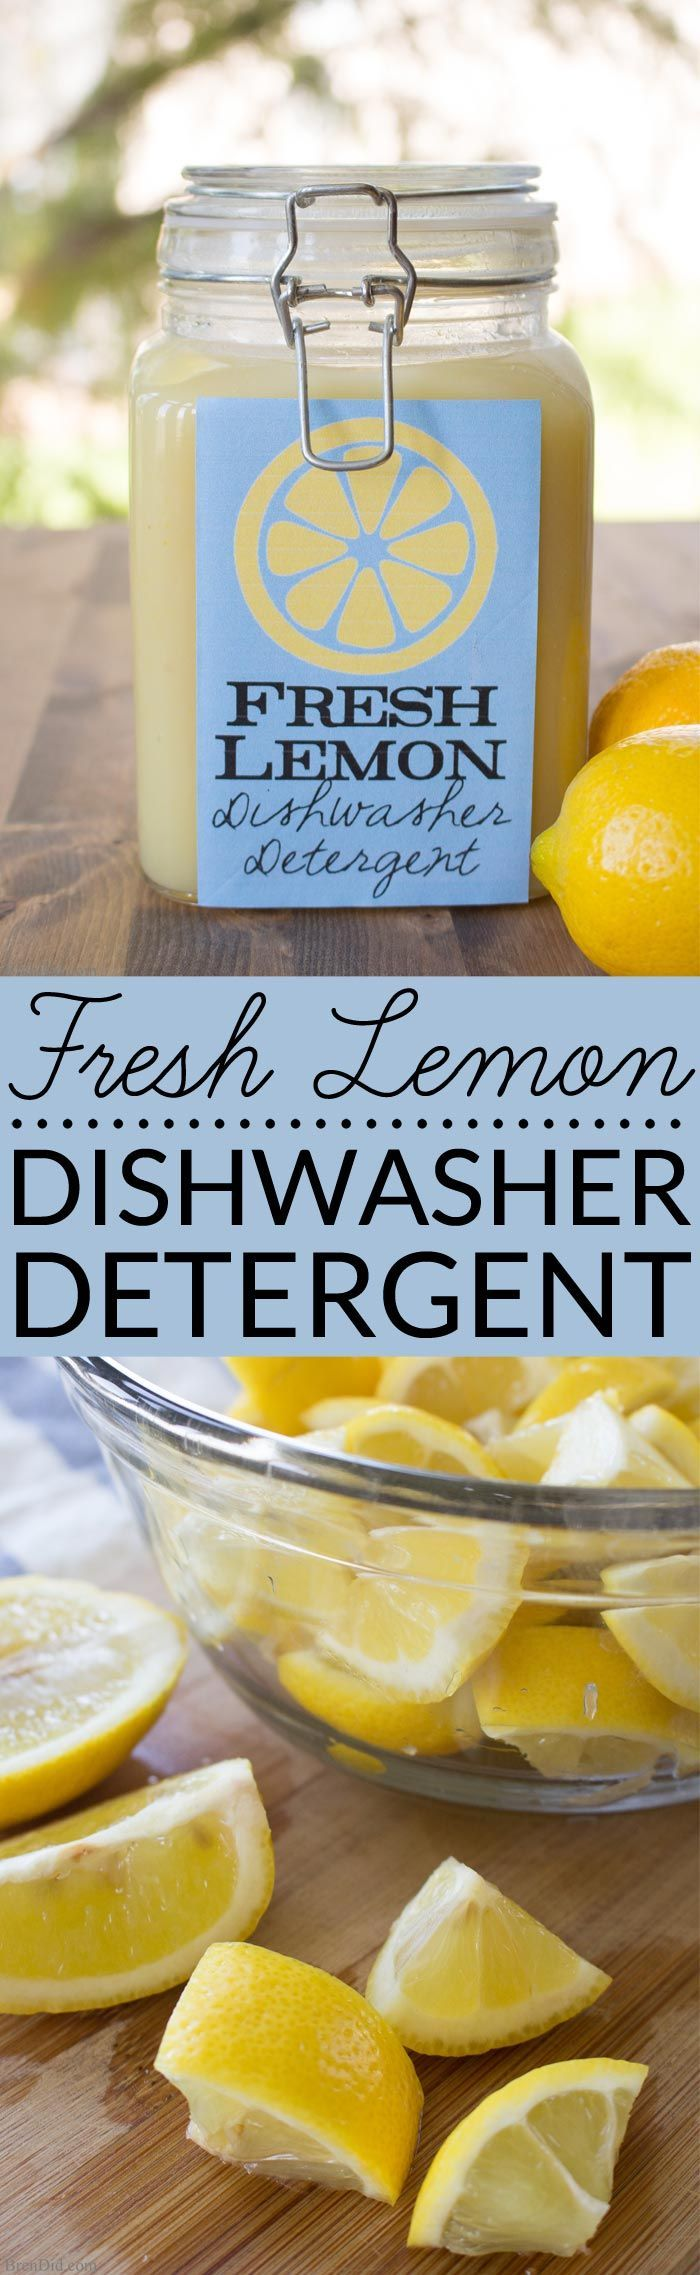 25 best ideas about dishwasher detergent on pinterest homemade dishwasher detergent homemade - Unusual uses for lemons ...